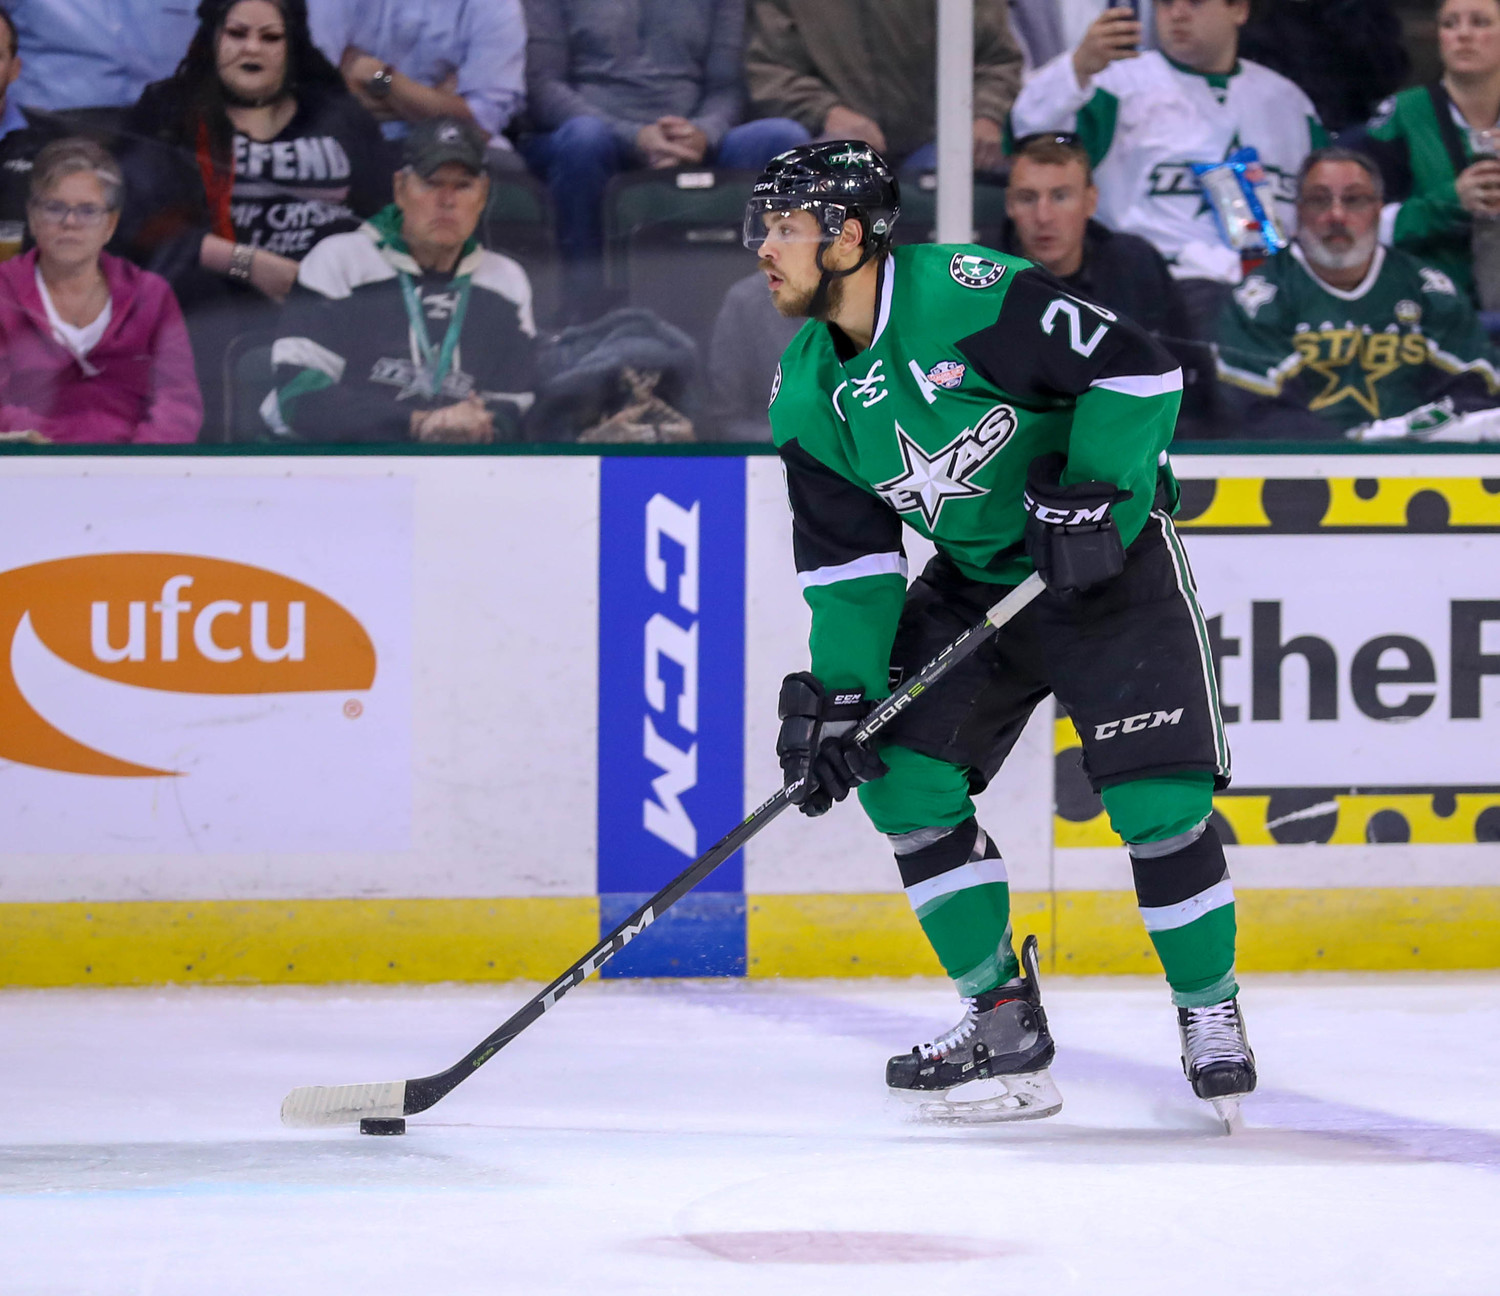 Sheldon Dries, left, scored a goal but the Stars fell to the Marlies 2-1 in Game 3 of the Calder Cup Finals Tuesday night at the HEB Center. Toronto leads the best-of-seven series 2-1 with Game 4 set for Thursday at 7 p.m.